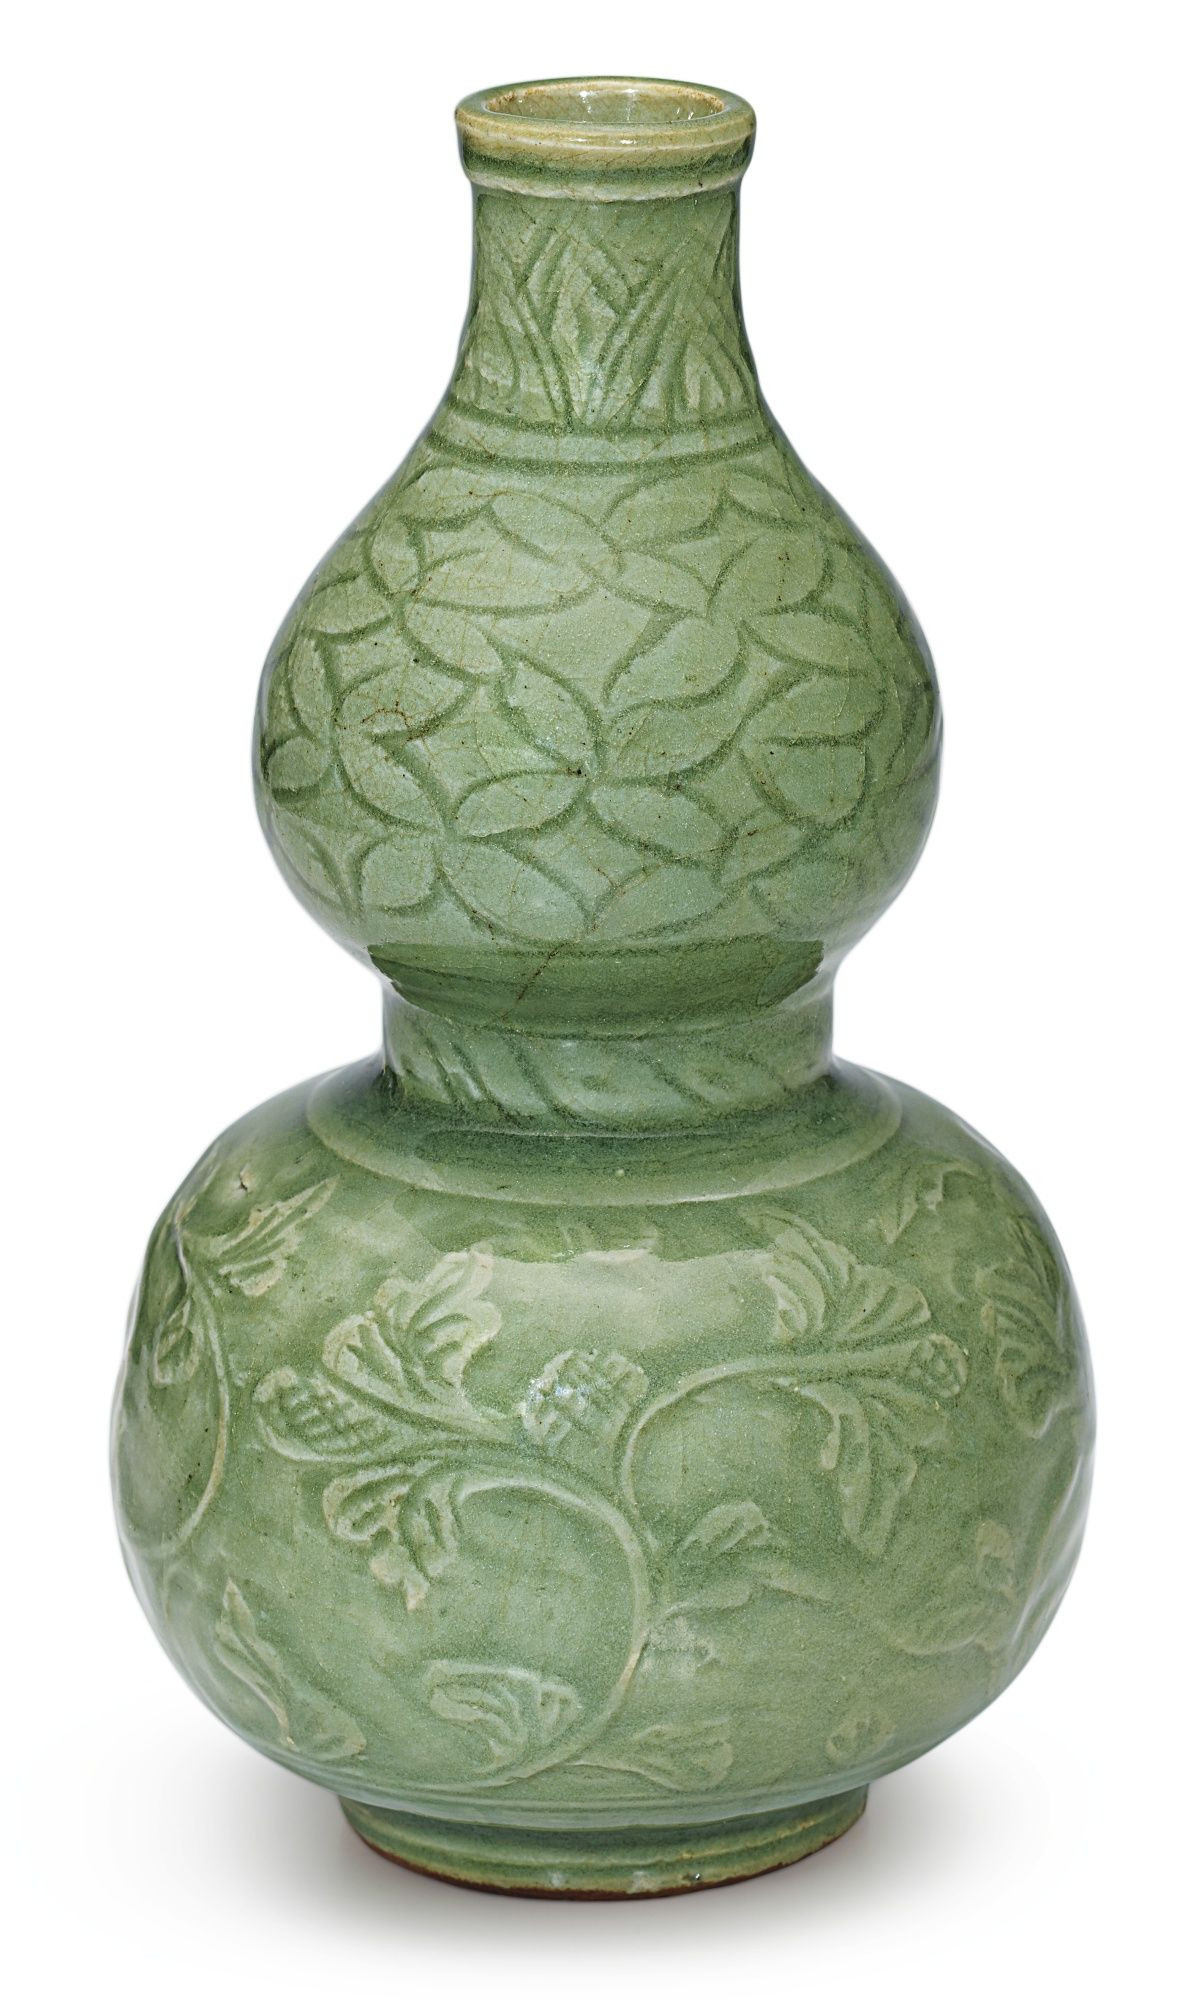 double gourd vase of a longquan celadon peony double gourd vase ming dynasty 16th within a longquan celadon peony double gourd vase ming dynasty 16th 17th